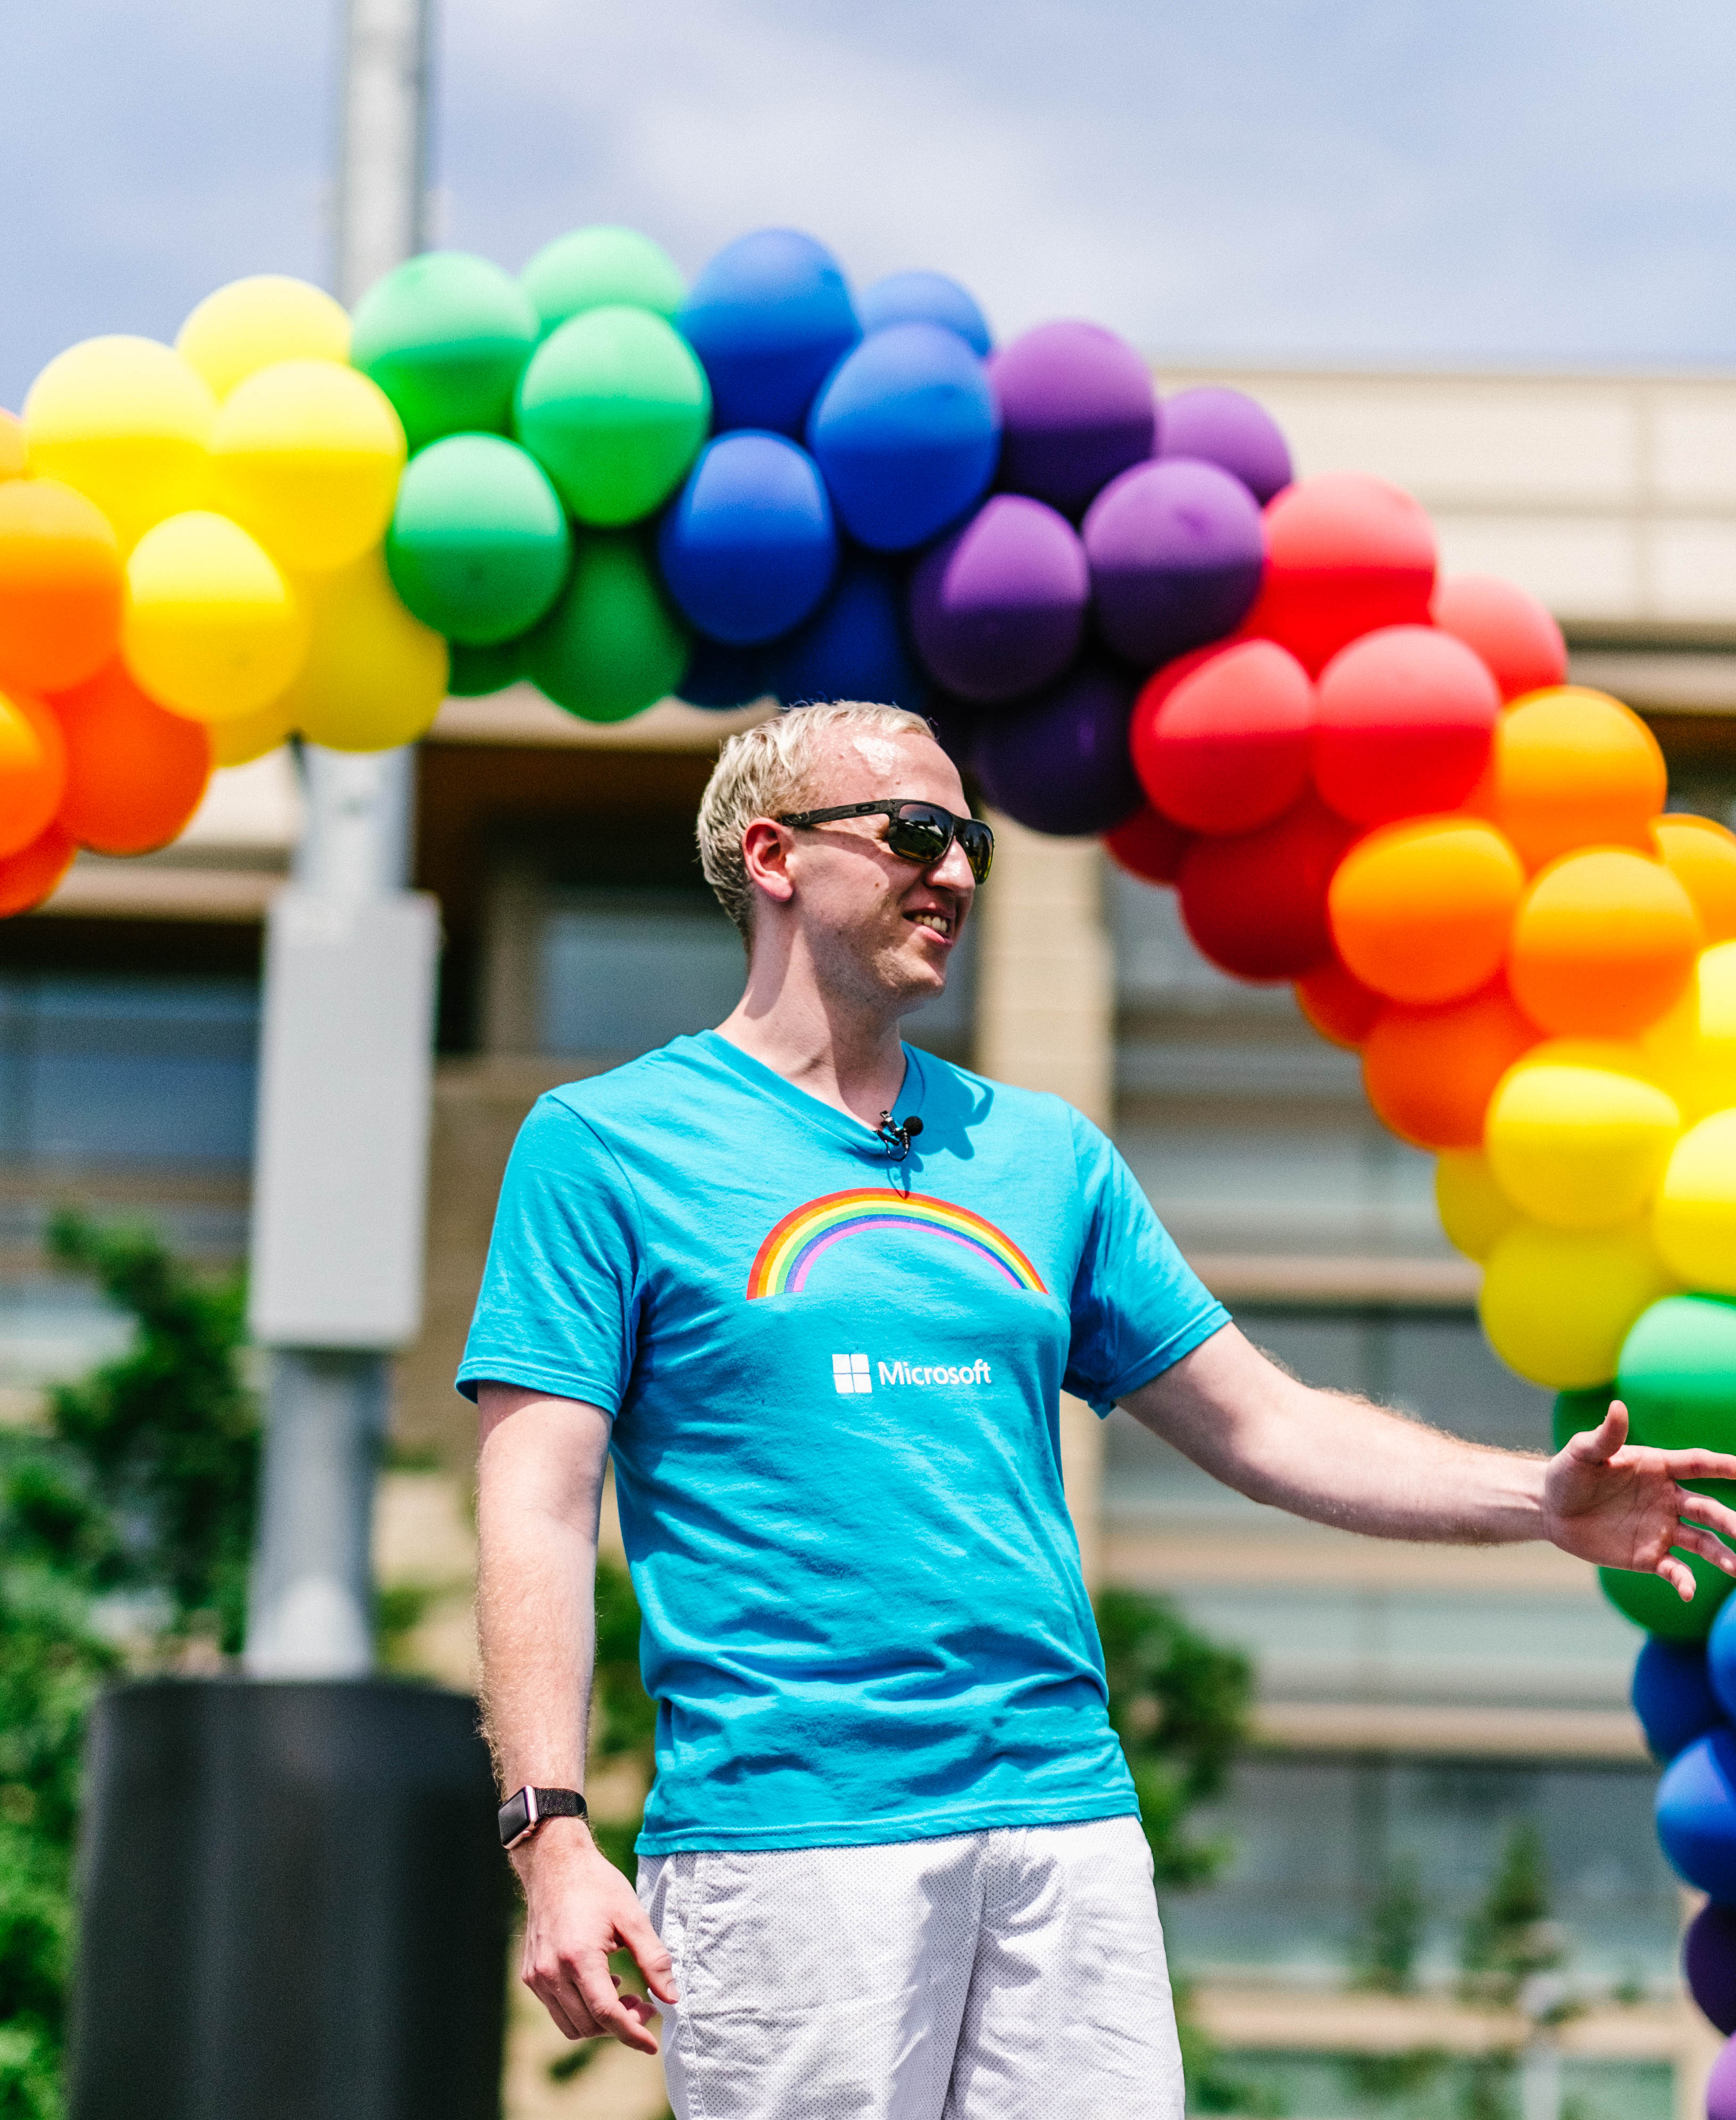 Photo of man with rainbow of balloons in background